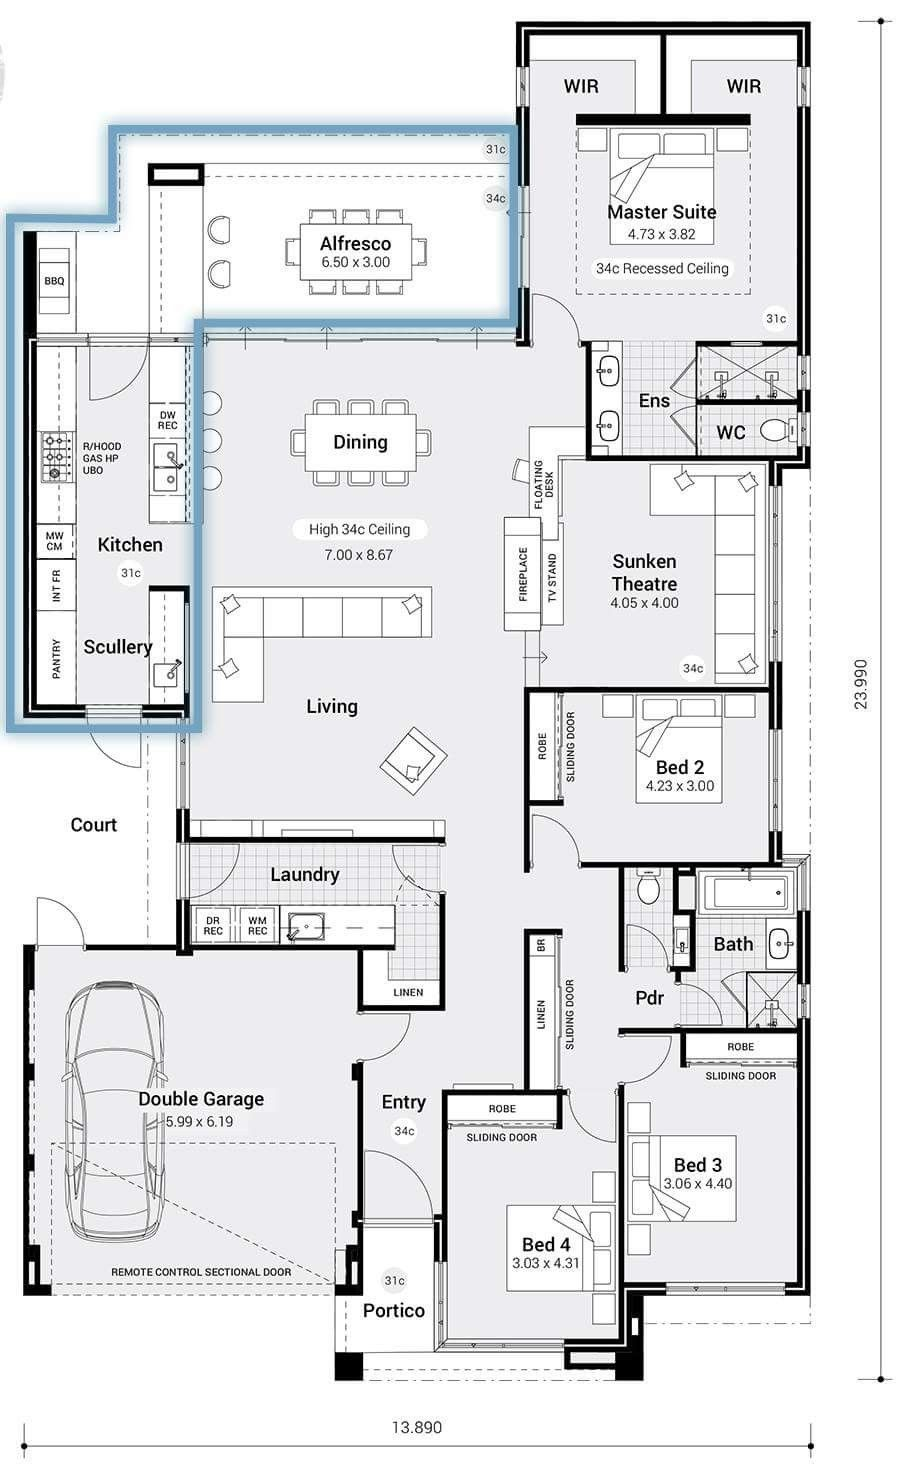 A Few Aspects Of This Are Fab His And Hers Wr Sunken Lounge Laundry Placement And Scull House Plans Australia Home Design Floor Plans Open Floor House Plans